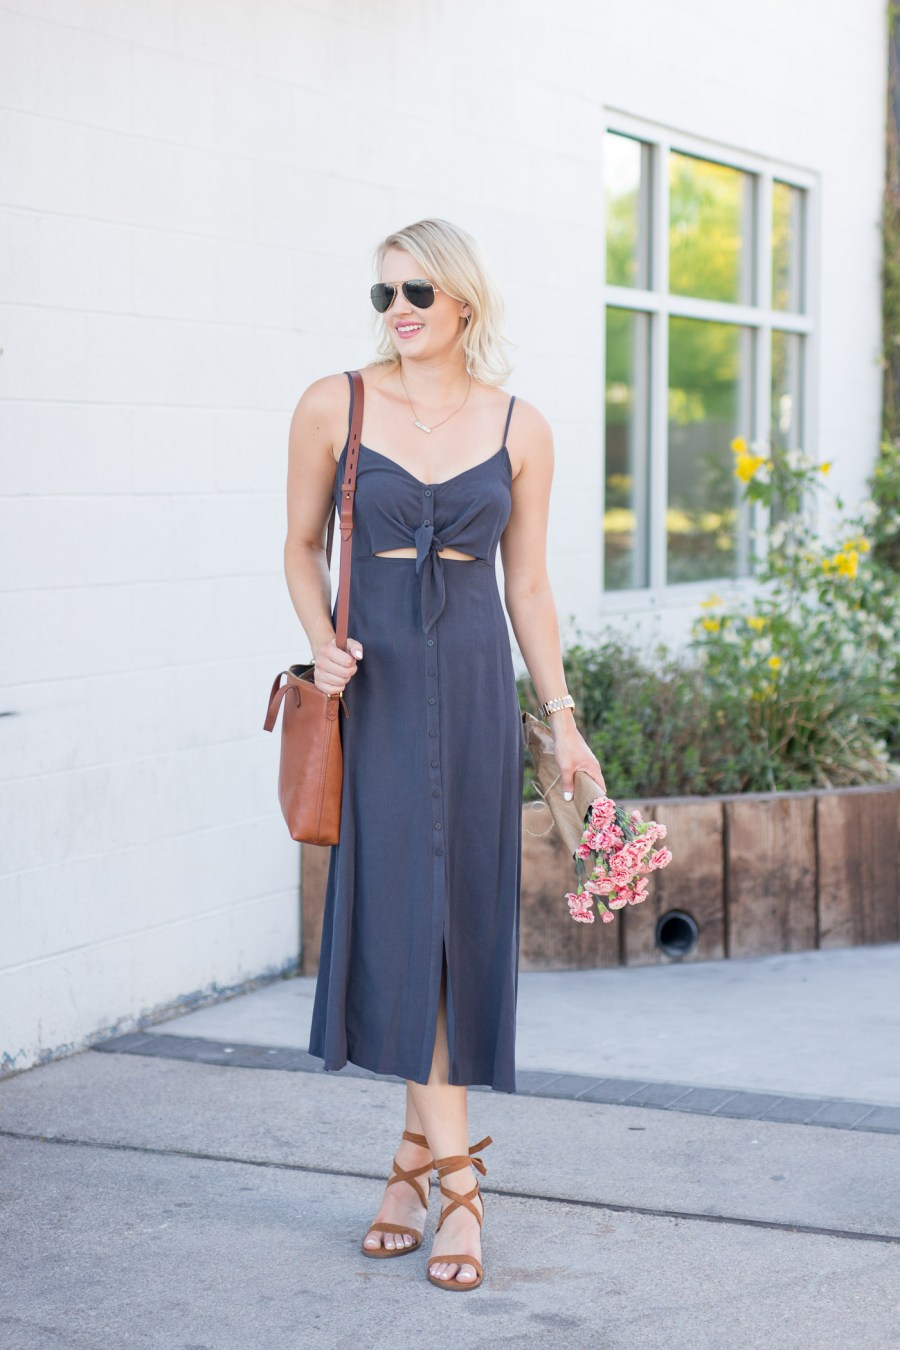 midi dress, topshop knot front slip dress, summer outfit idea, fashion blog, Treats and Trends